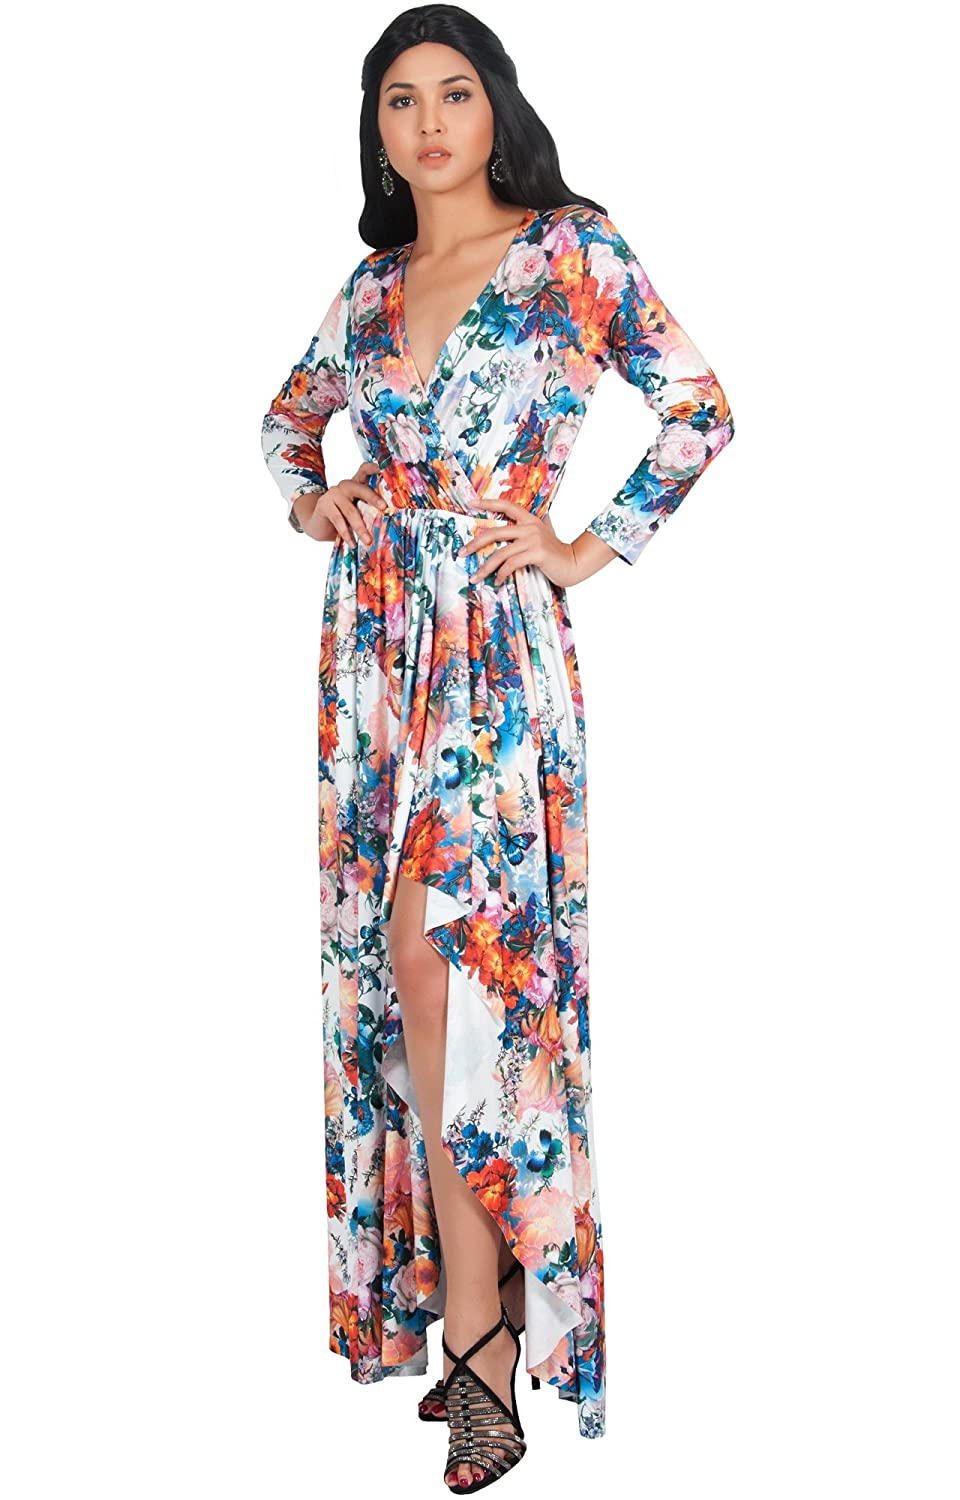 99a6e0743a PLUS SIZE - These sexy and slimming plus size v-neck maxi dresses and gowns  are the perfect clothing choice for women. STYLE - Floral printed  sleeveless ...